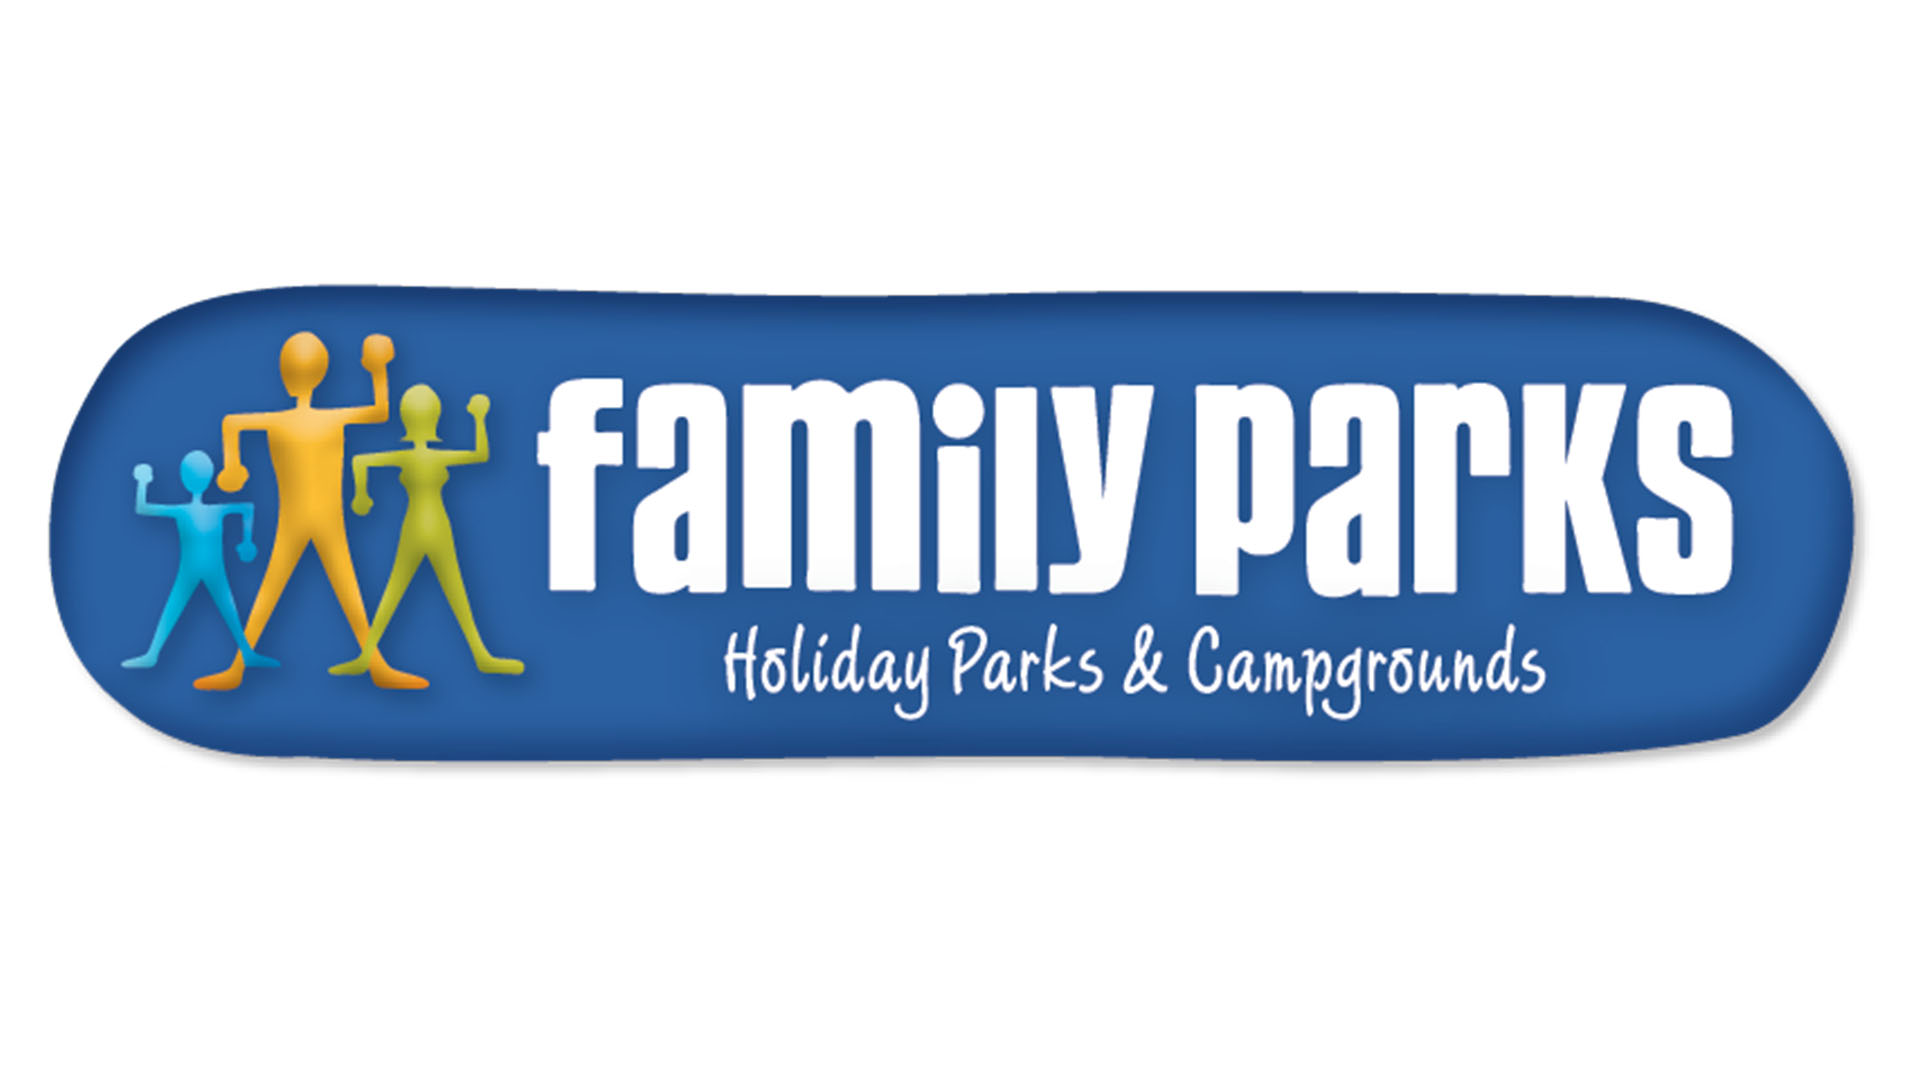 Family parks - Holiday Parks and Campgrounds